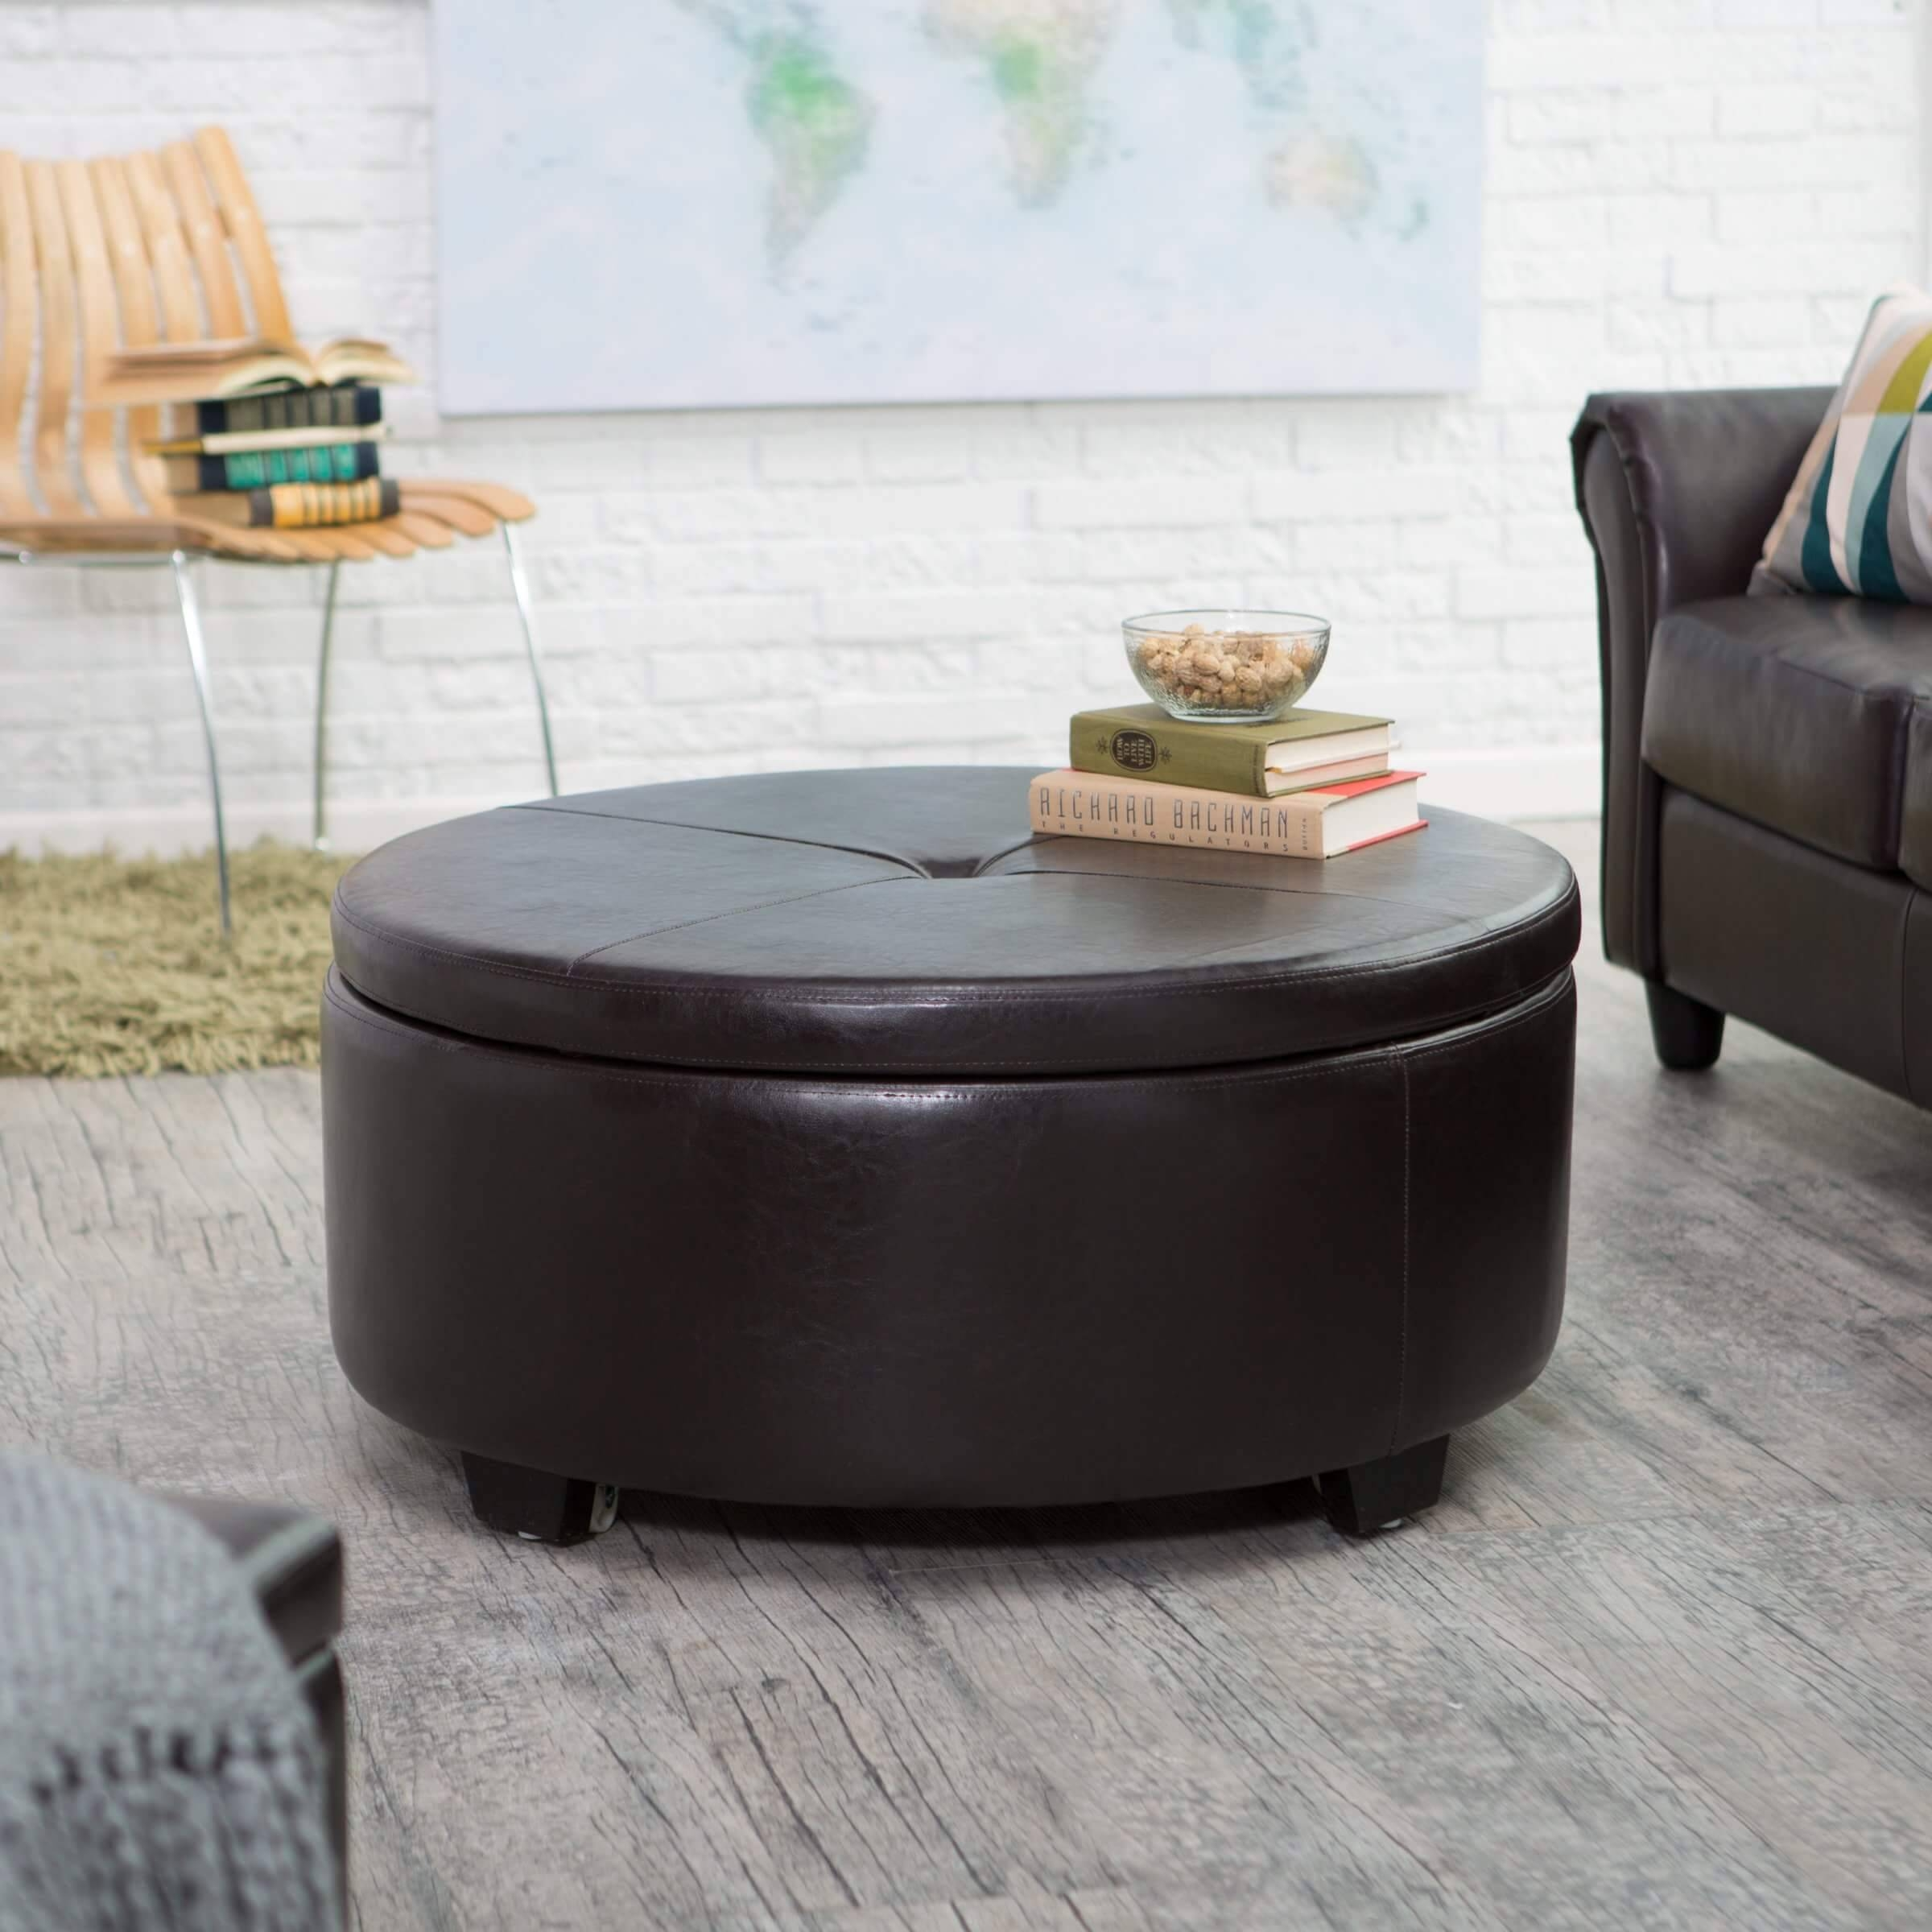 36 Top Brown Leather Ottoman Coffee Tables Within Brown Leather Ottoman Coffee Tables With Storages (Photo 11 of 30)